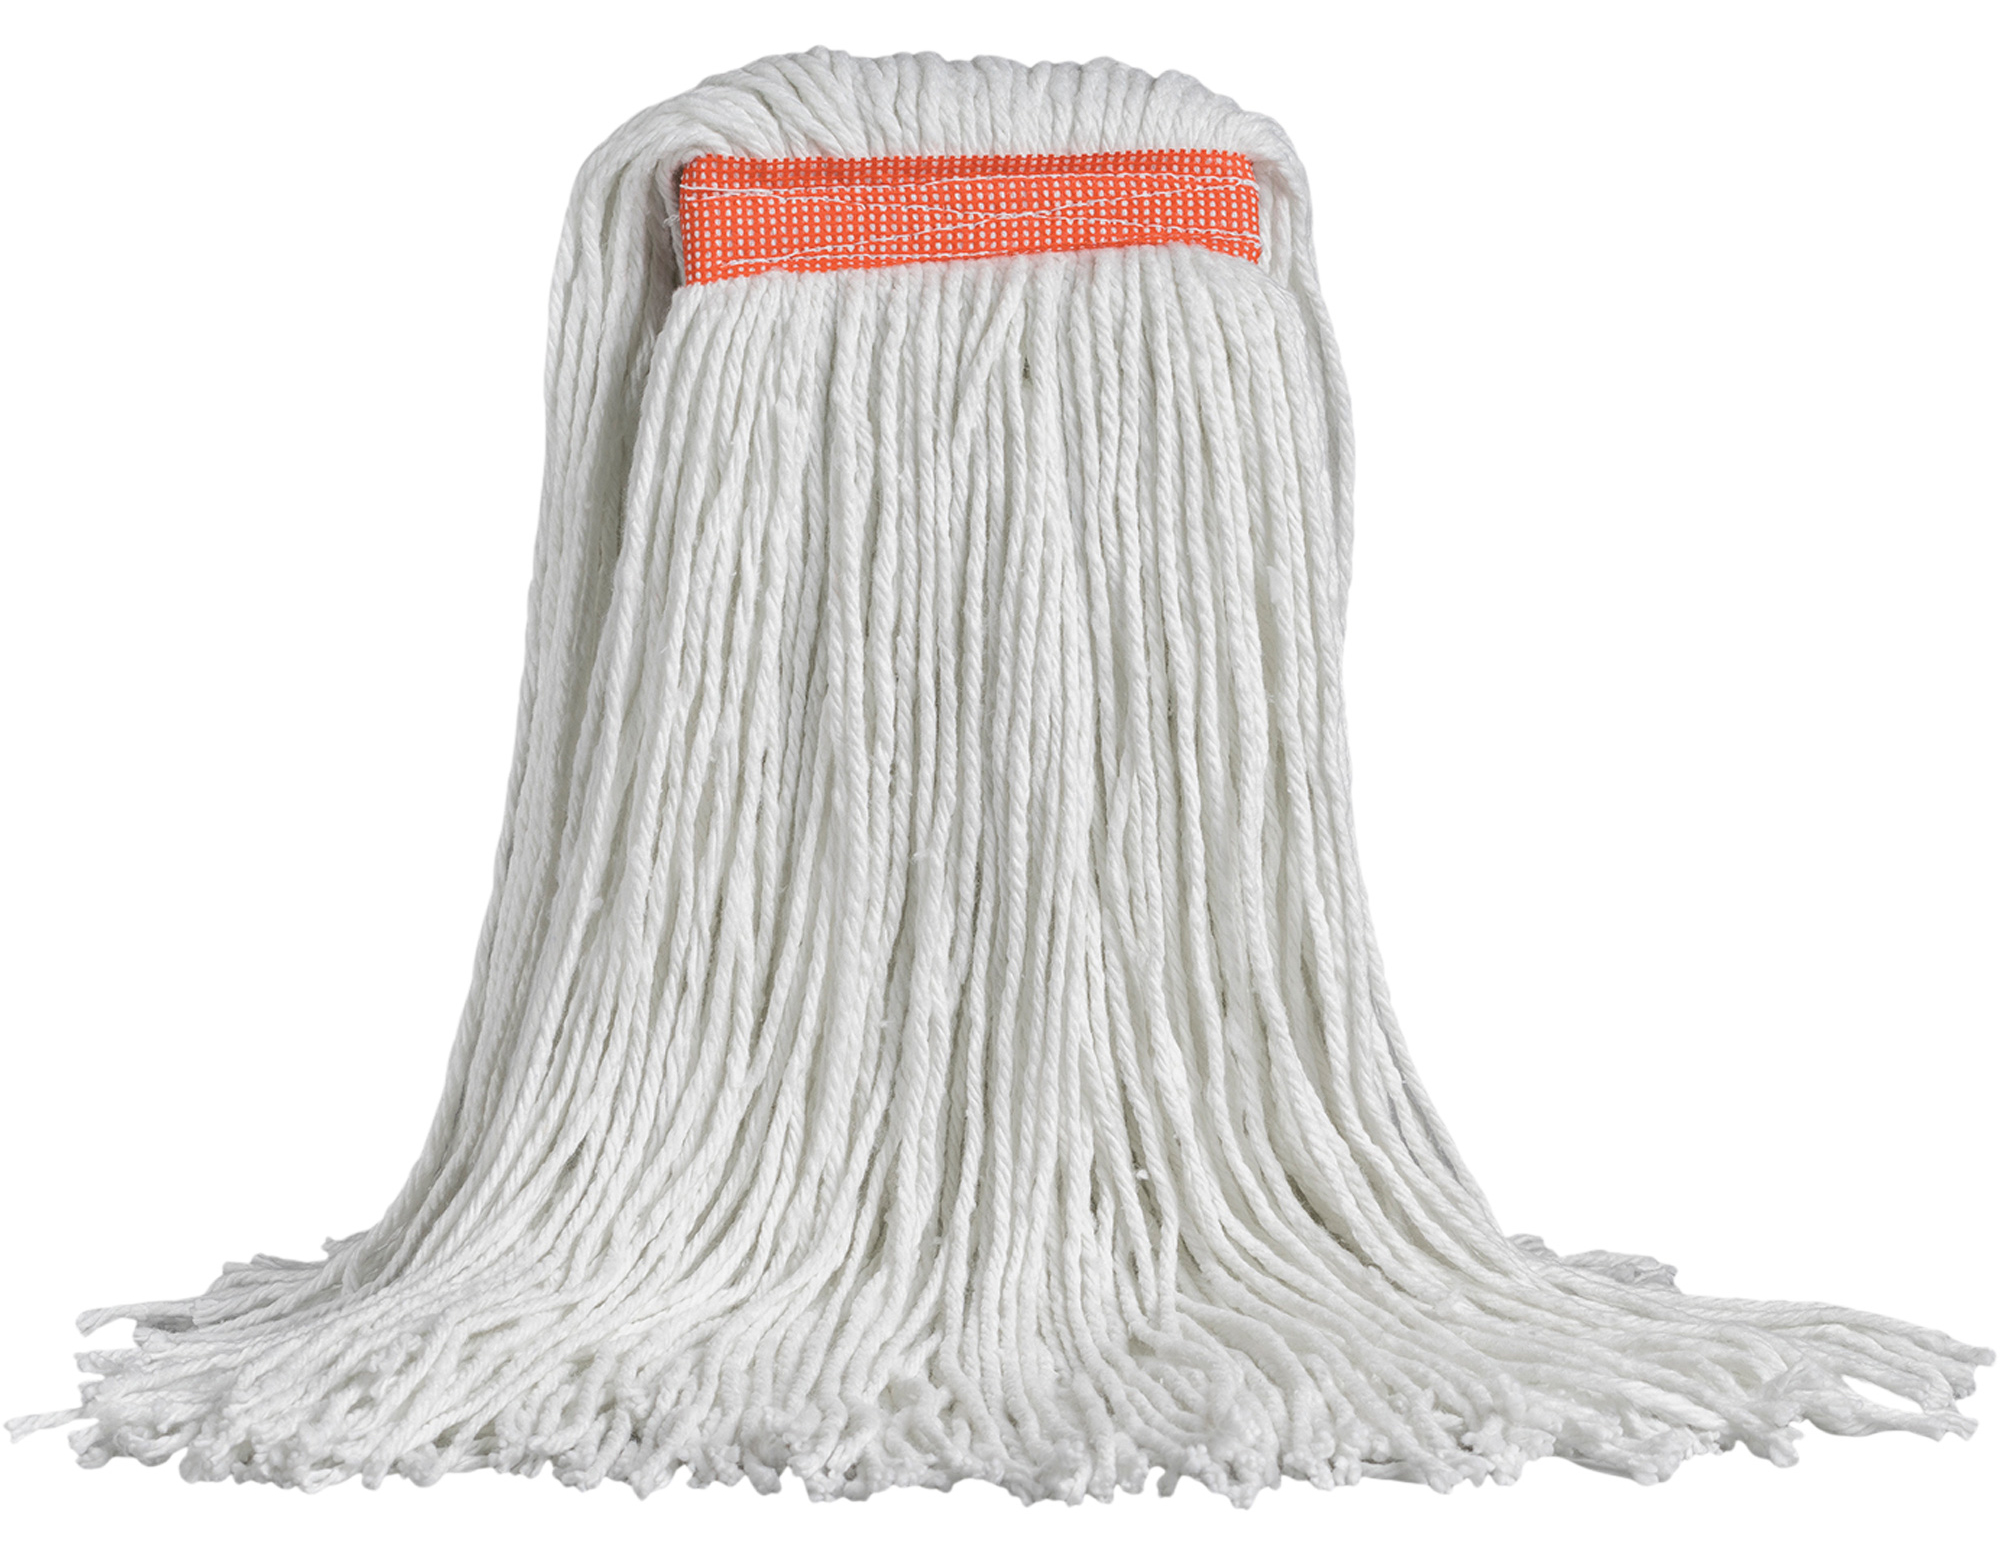 Synray™ Cut End, Narrow Band Mop Head 32oz/850g